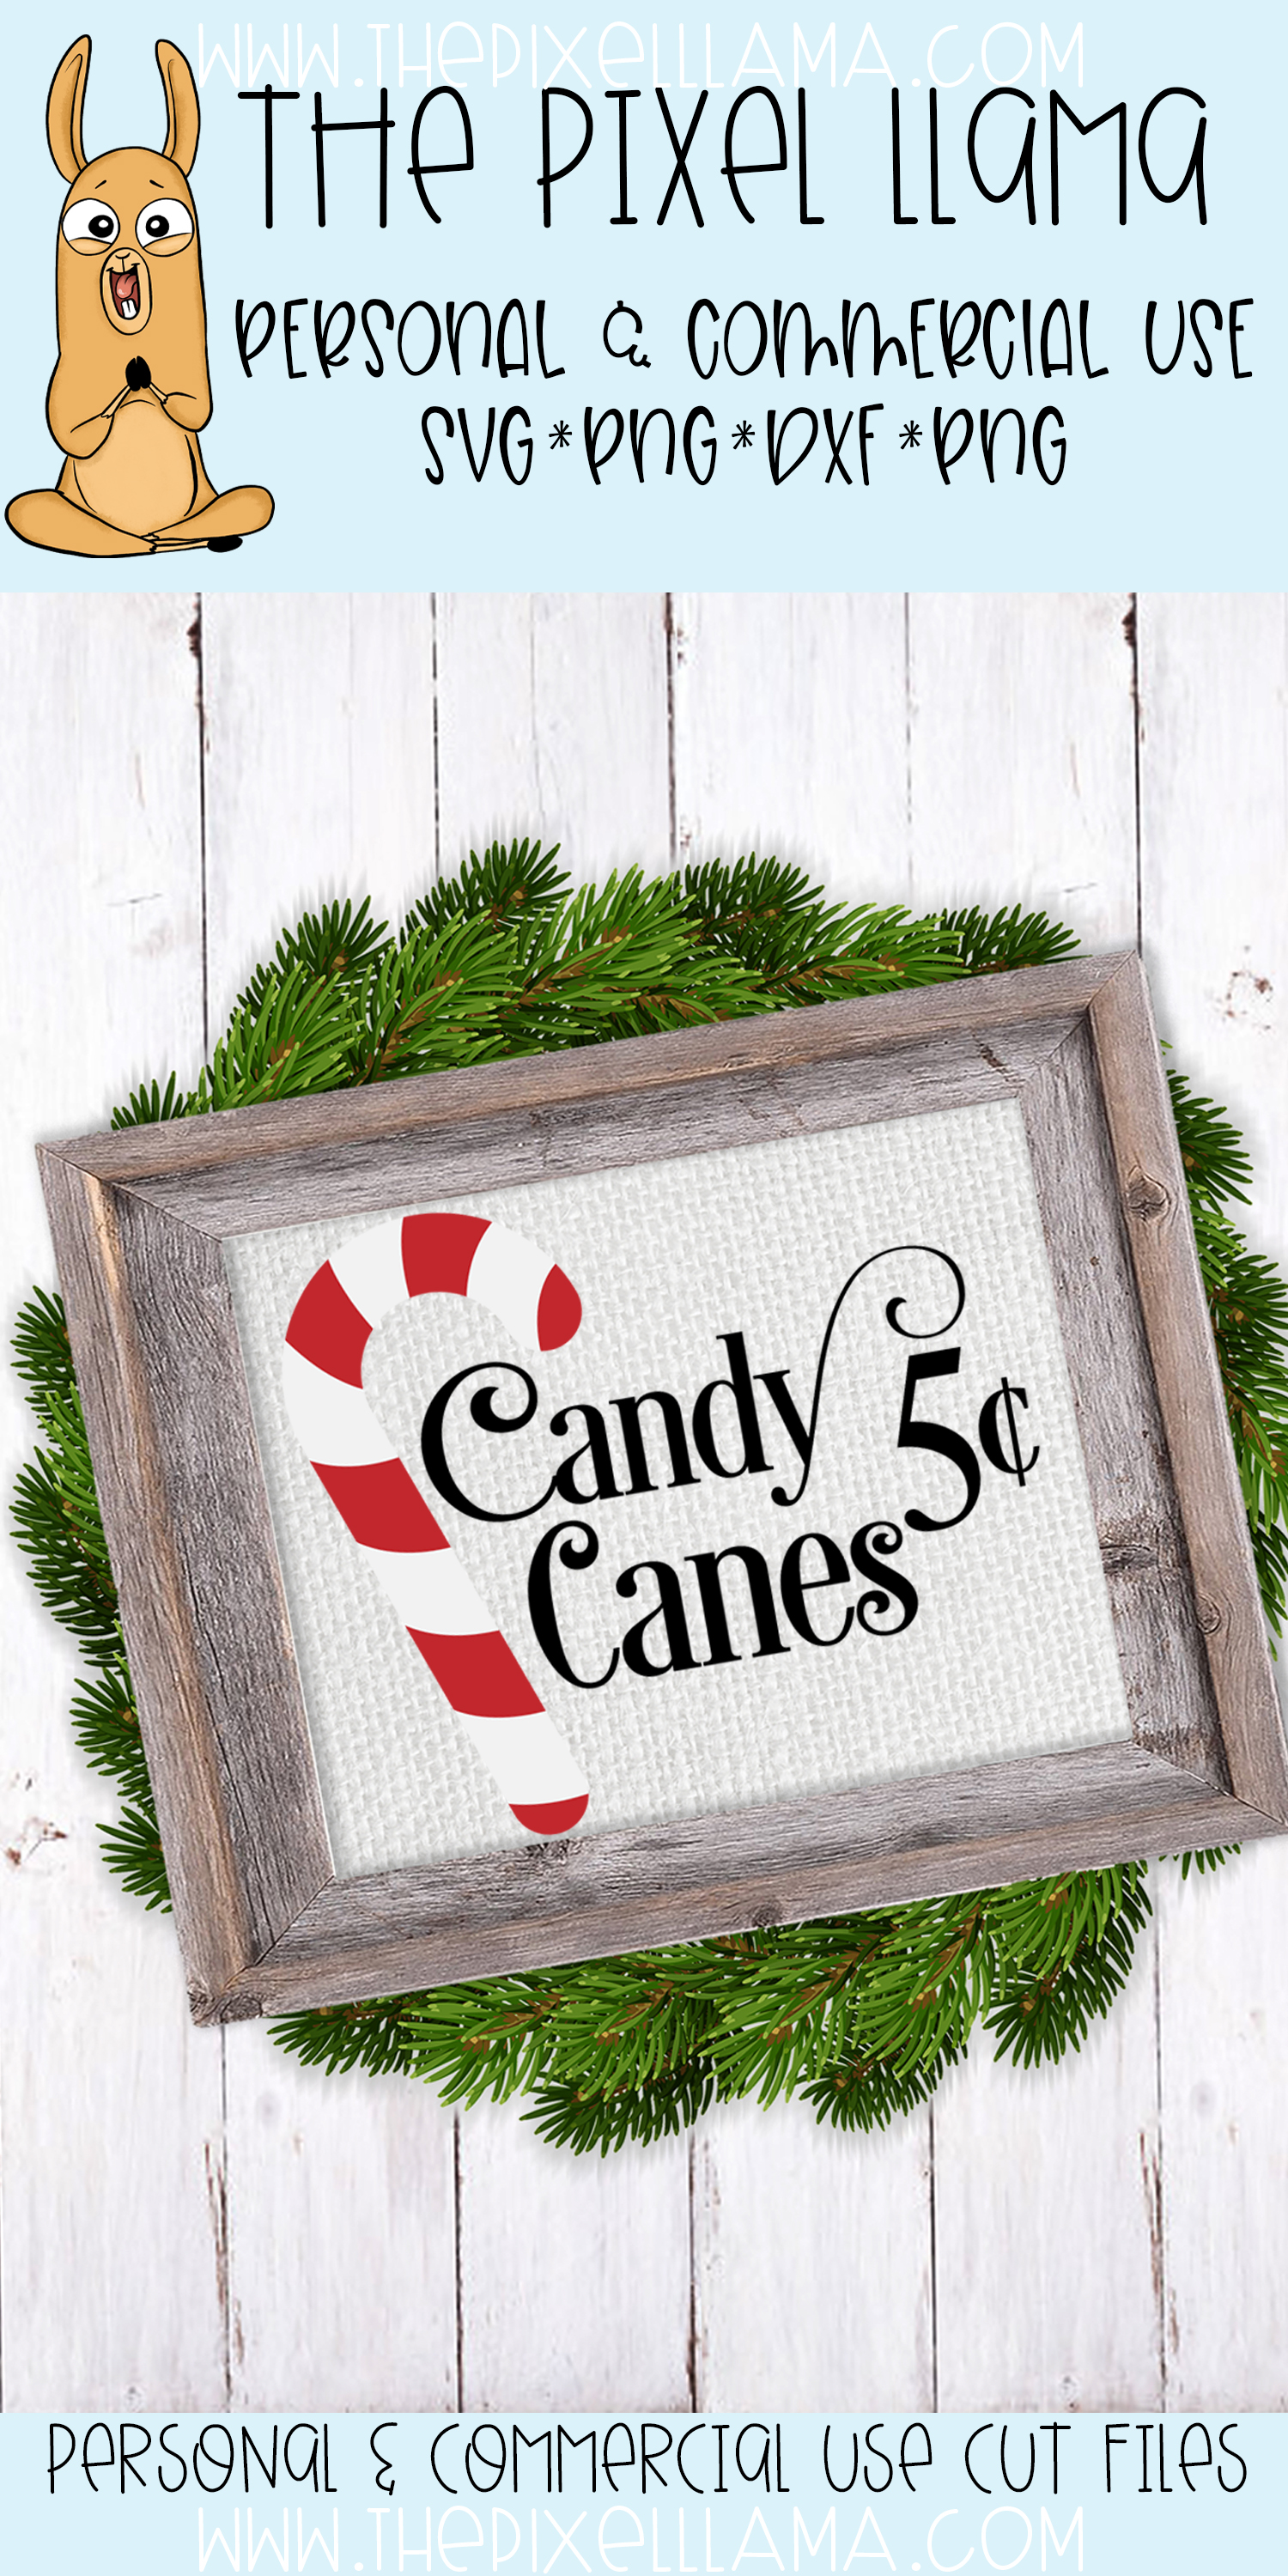 Candy Canes 5 Cents Sign SVG example image 2